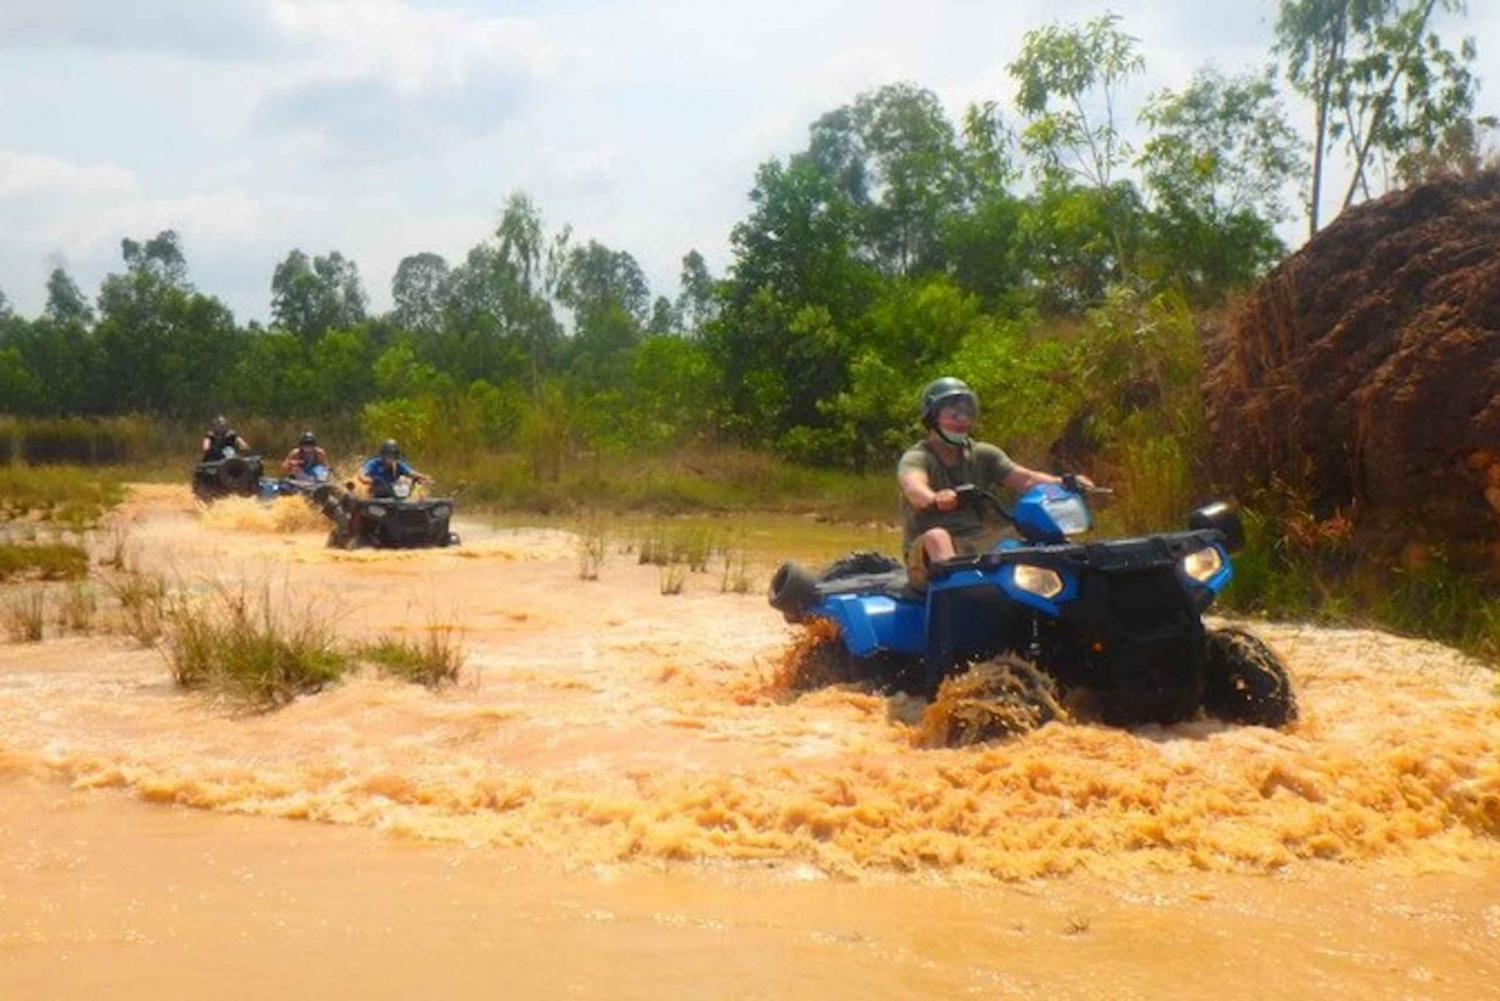 2-Hour Advanced ATV Off-Road Tour with Meal